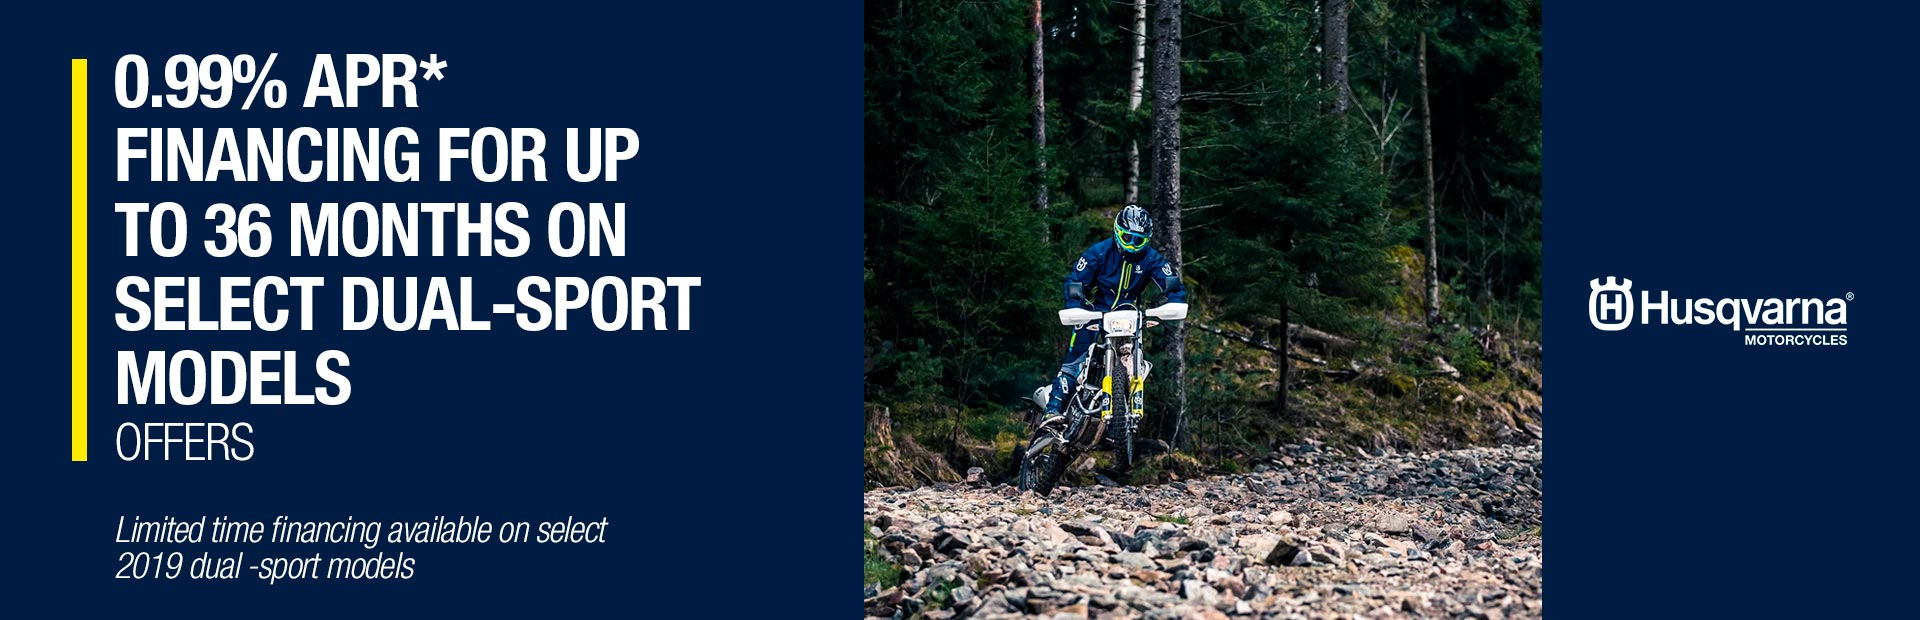 Husqvarna Motorcycles: 0.99% APR* FINANCING FOR UP TO 36 MONTHS ON SELECT